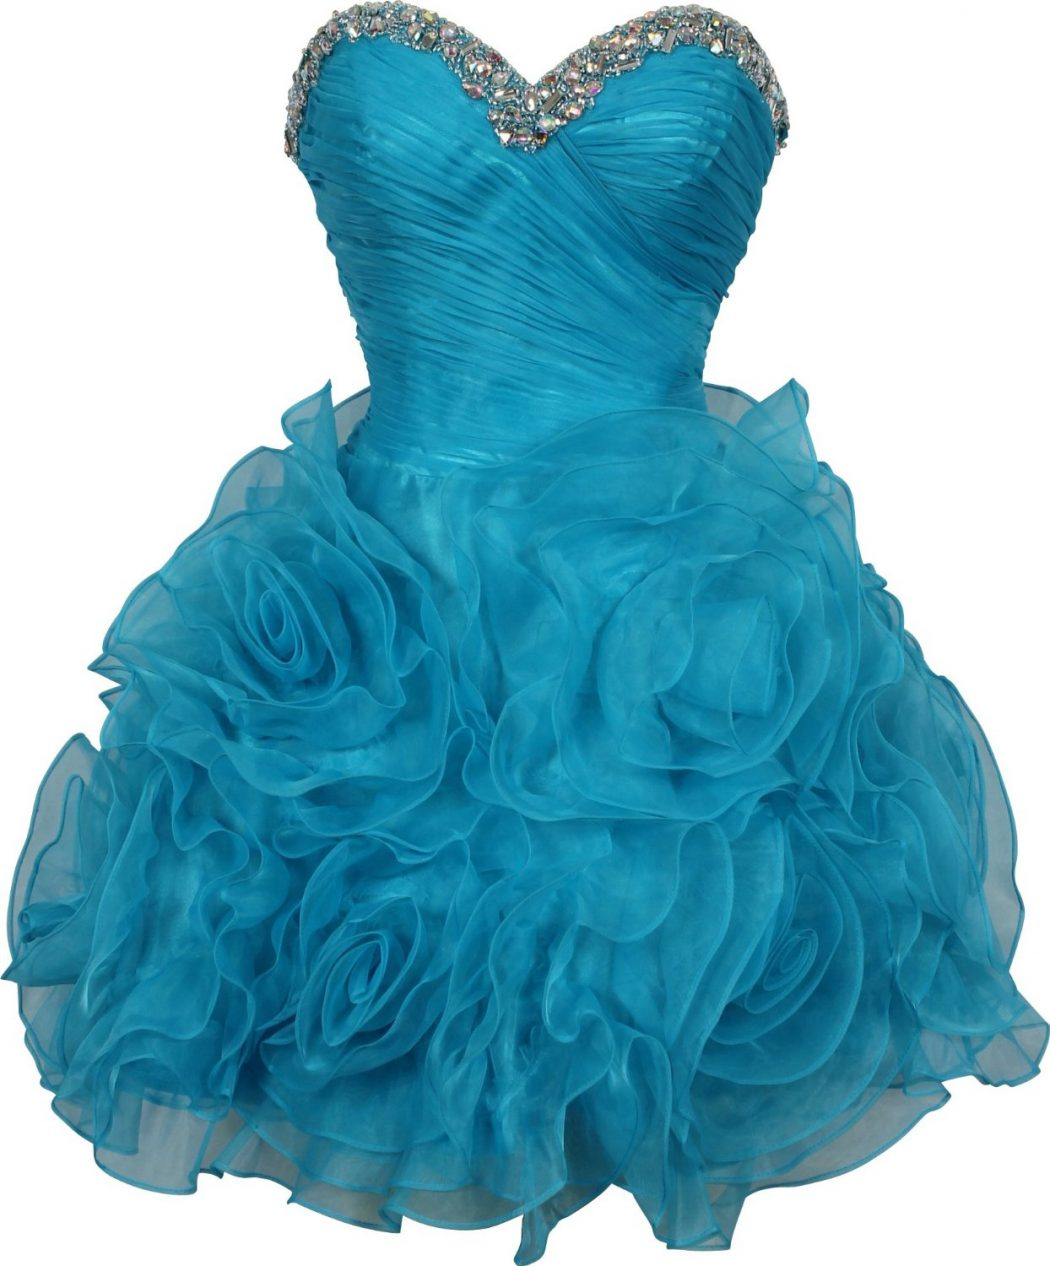 Beaded-Organza-Florettes-Mini-Prom-Dress-Formal-Gown-Junior-and-Junior-Plus-Size Dresses You Can Wear in the Holiday Season